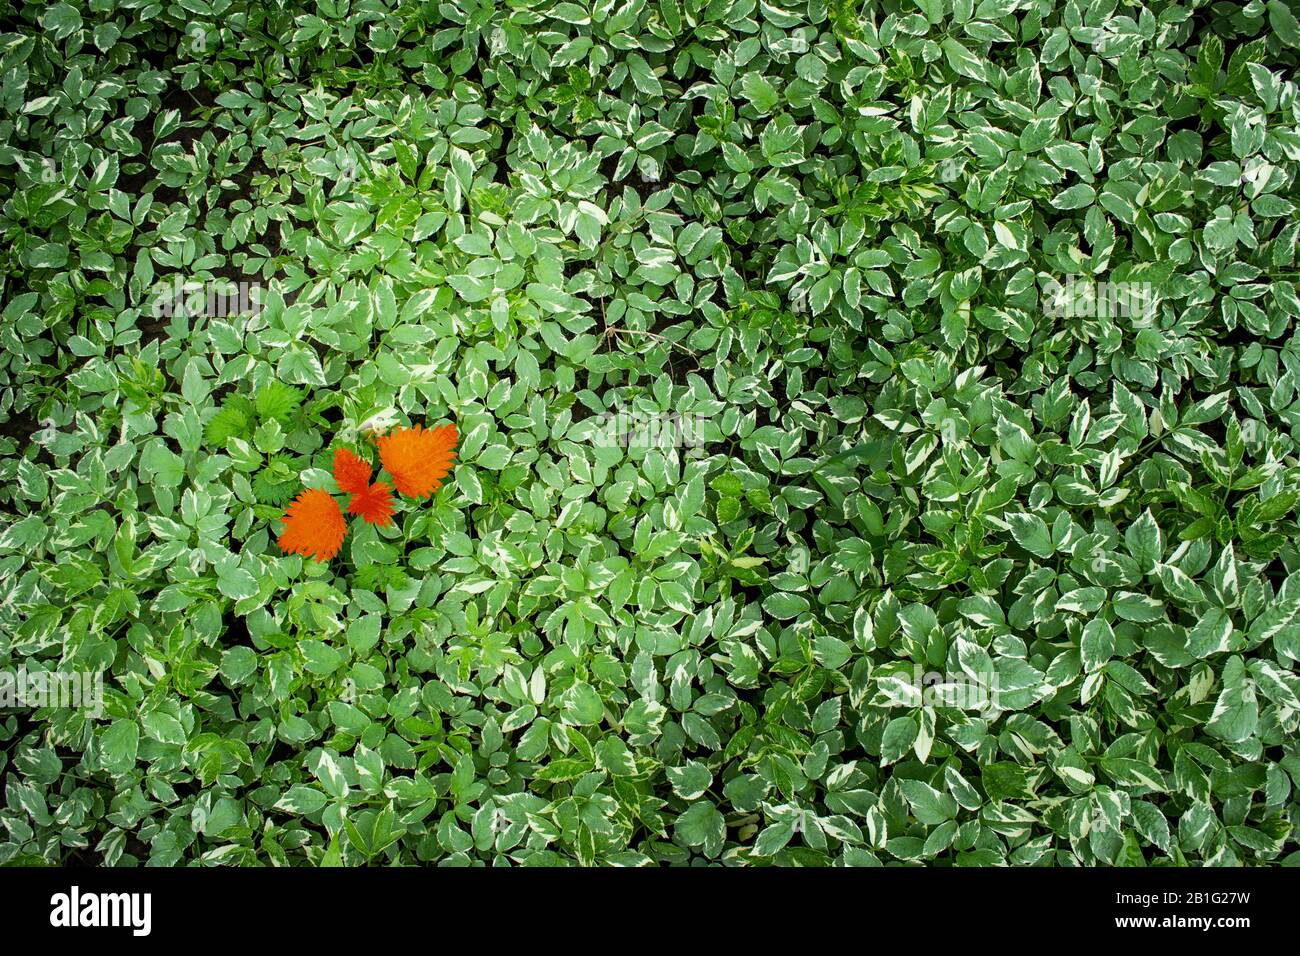 Conception for business  - lidership or diversity, inclusion, adoptation in a team, challenge. Red leaf on the green leaves background. Stock Photo